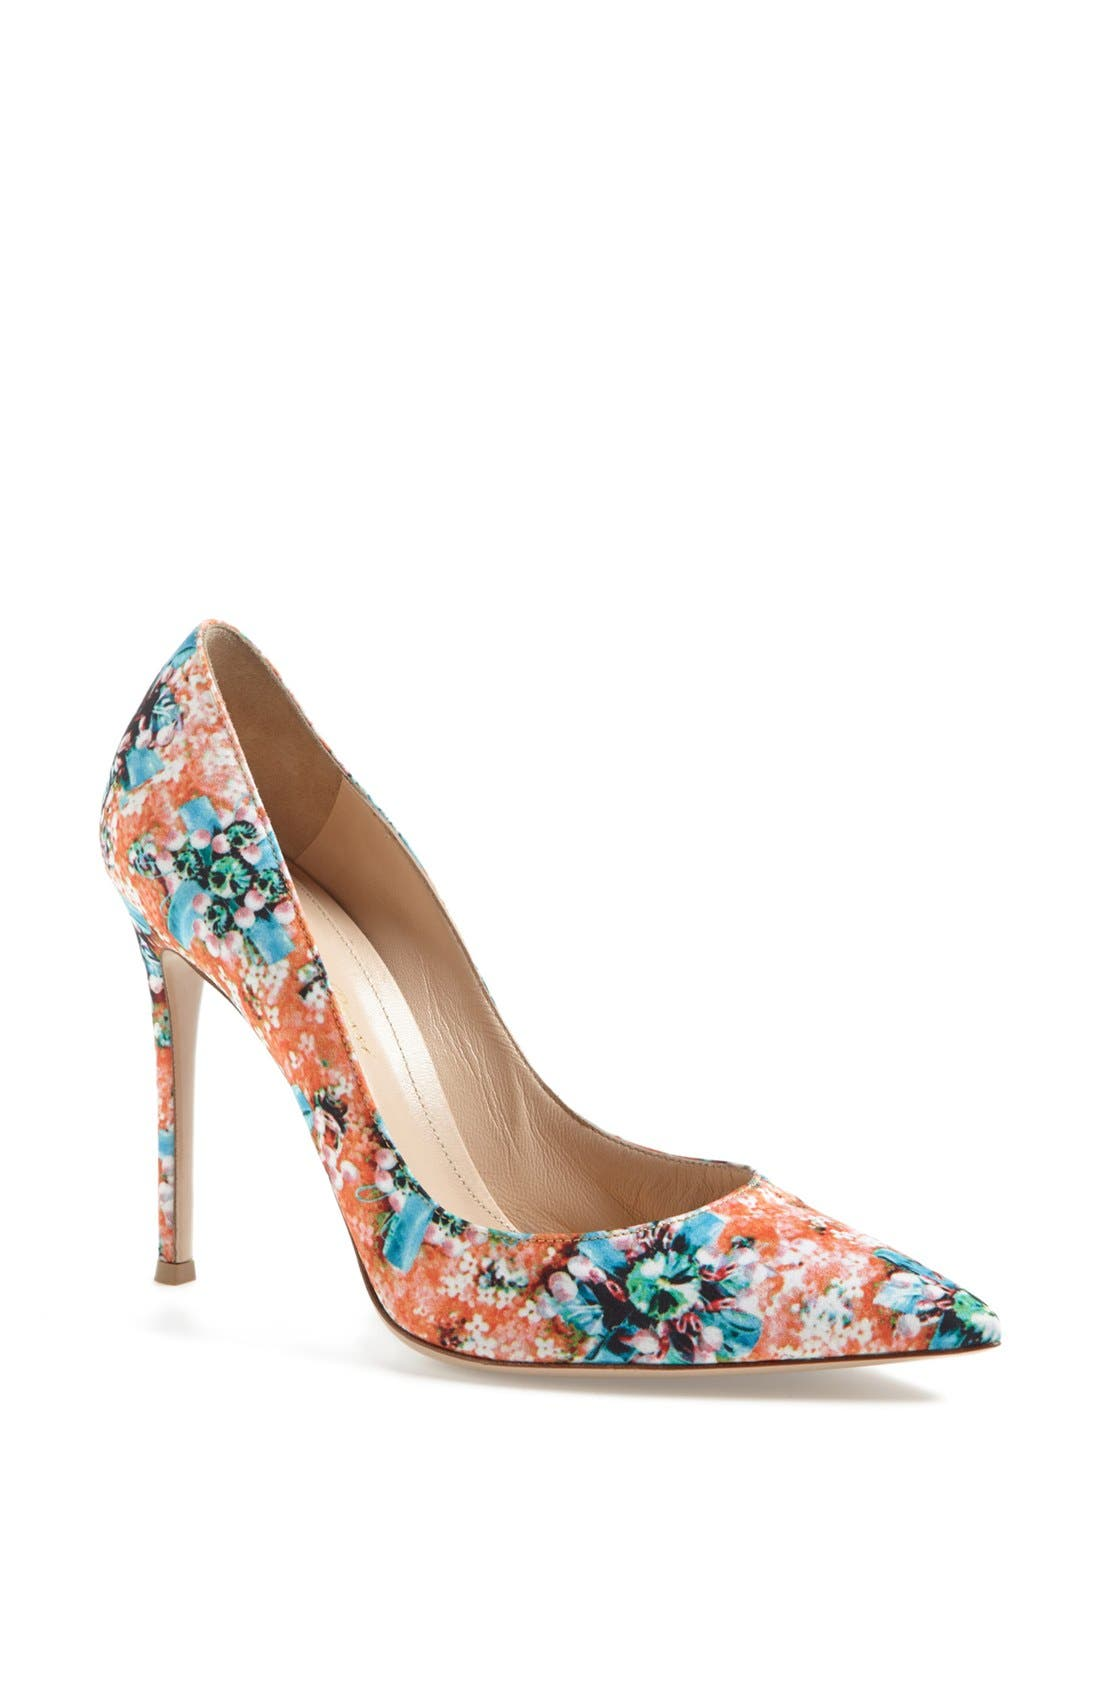 Alternate Image 1 Selected - Mary Katrantzou 'Lisa' Pump